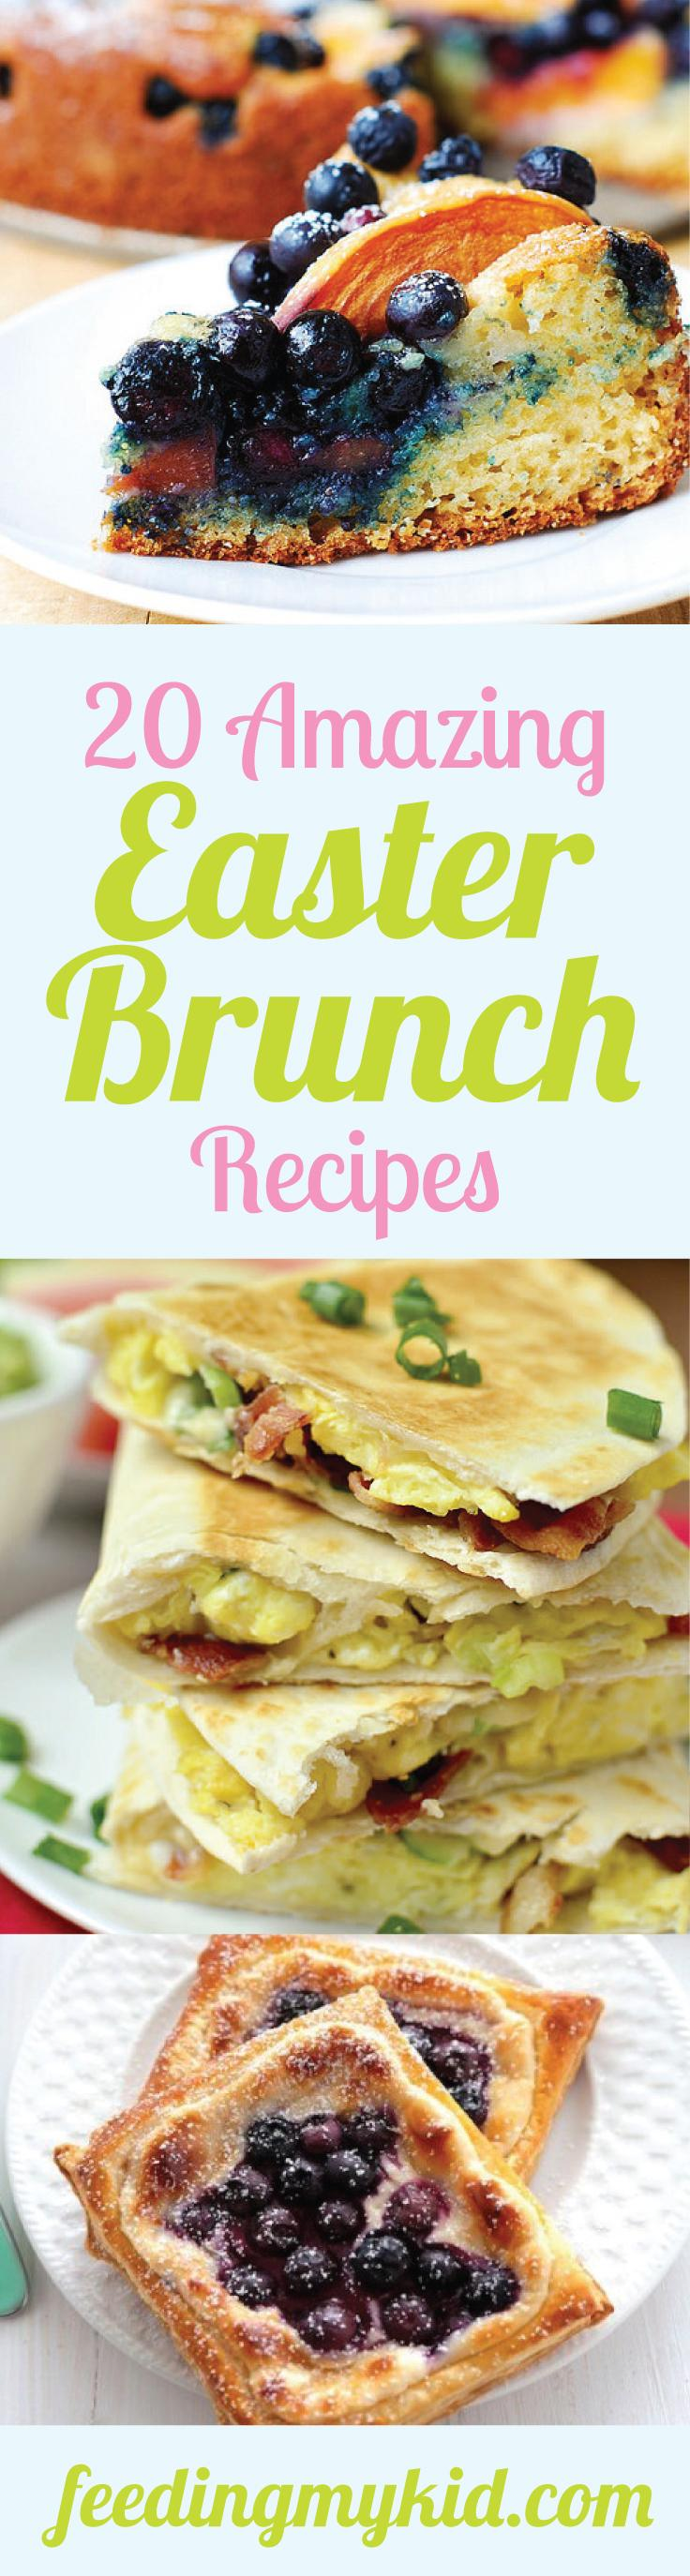 20 Amazing Easter Brunch Recipes - Easter is the perfect holiday to showcase your brunch making skills. We have the most amazing easter brunch recipes that the whole family will love. So celebrate with these great flavors. From skinny crunchy stuffed french toast to breakfast quesadillas. These are the perfect recipes for Easter brunch. The whole family will love these.